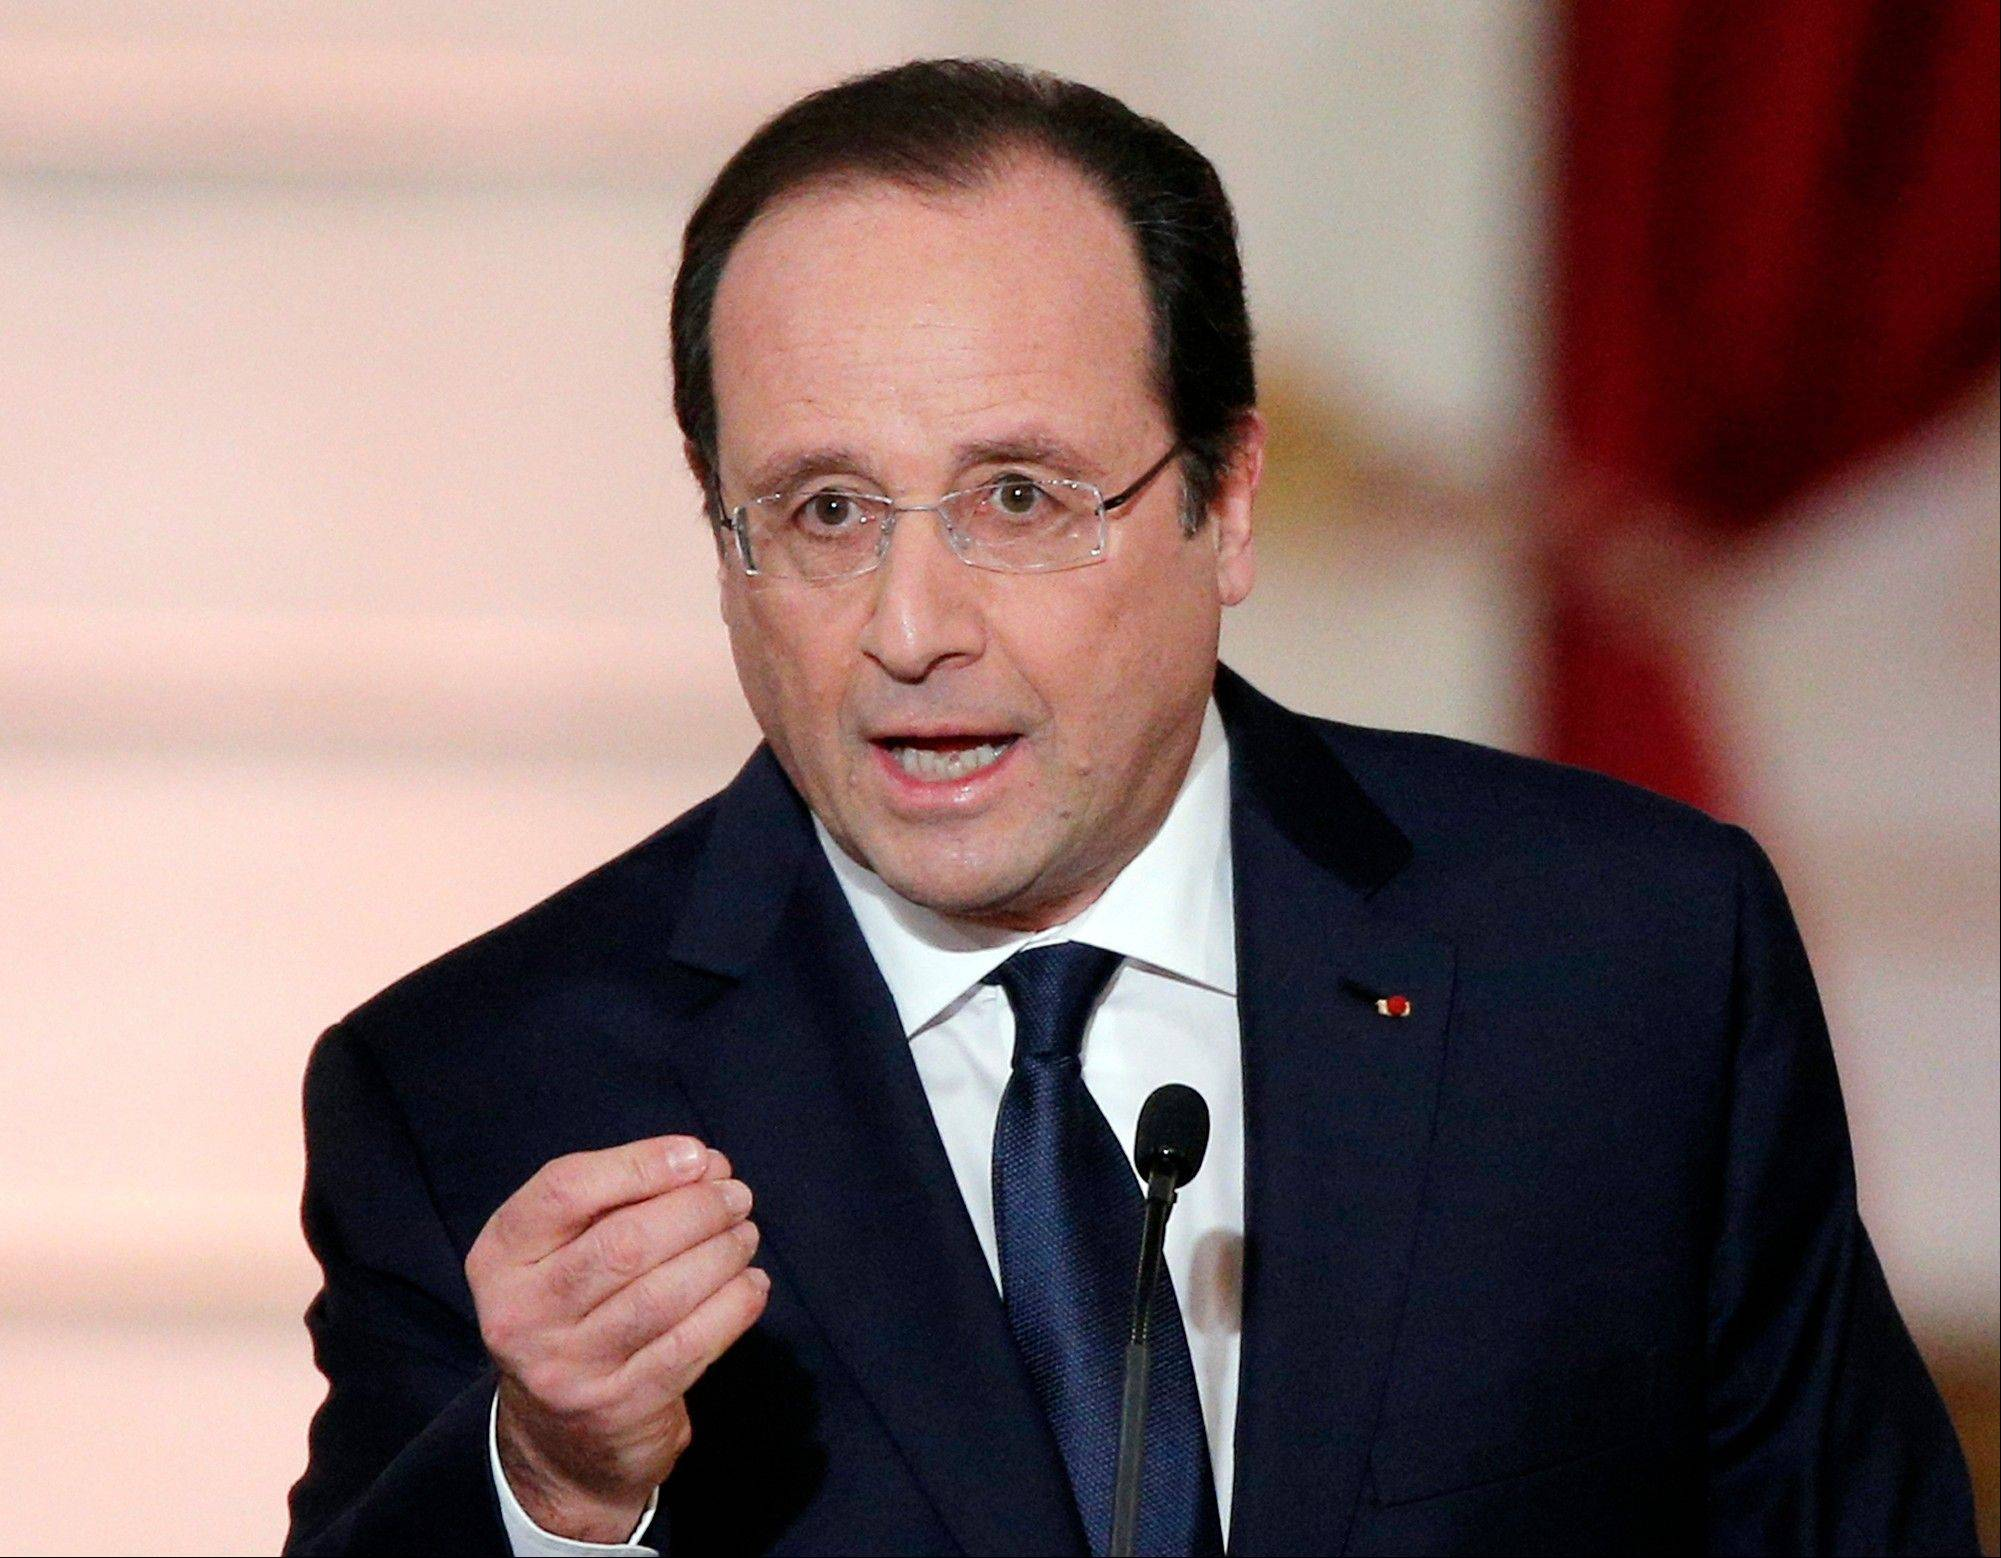 French President Francois Hollande's complex personal life -- and what it means to be the first lady in modern society -- received a full airing as he answered questions for the first time since a tabloid reported he was having an affair with an actress.